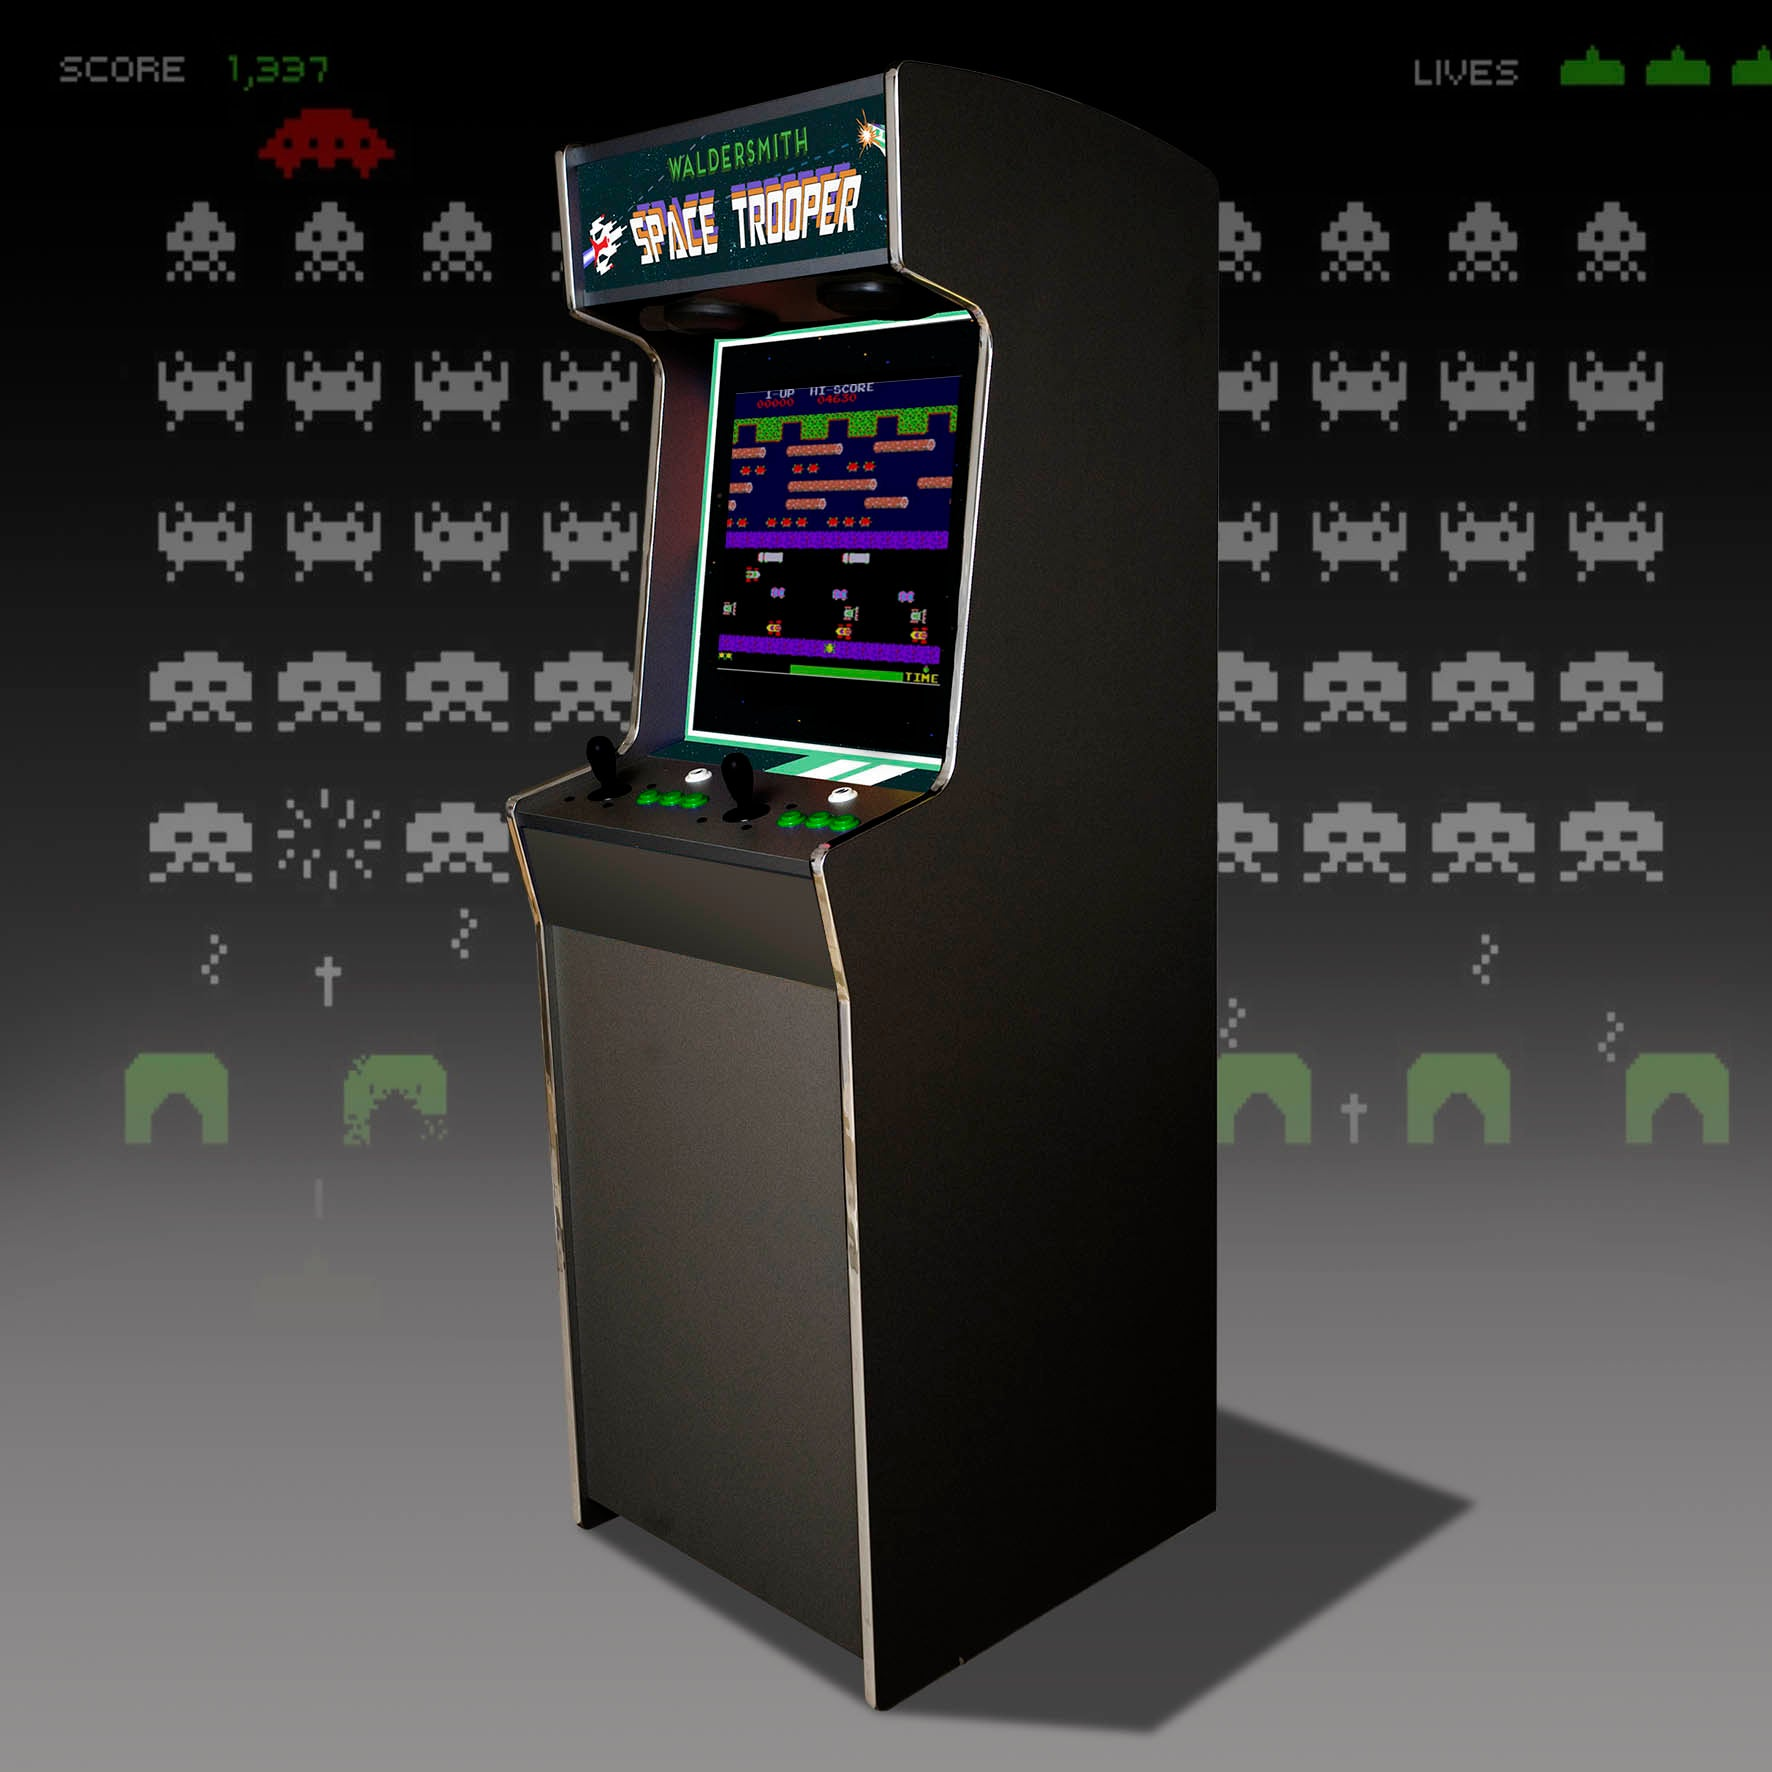 Waldersmith Space Trooper Arcade Machine